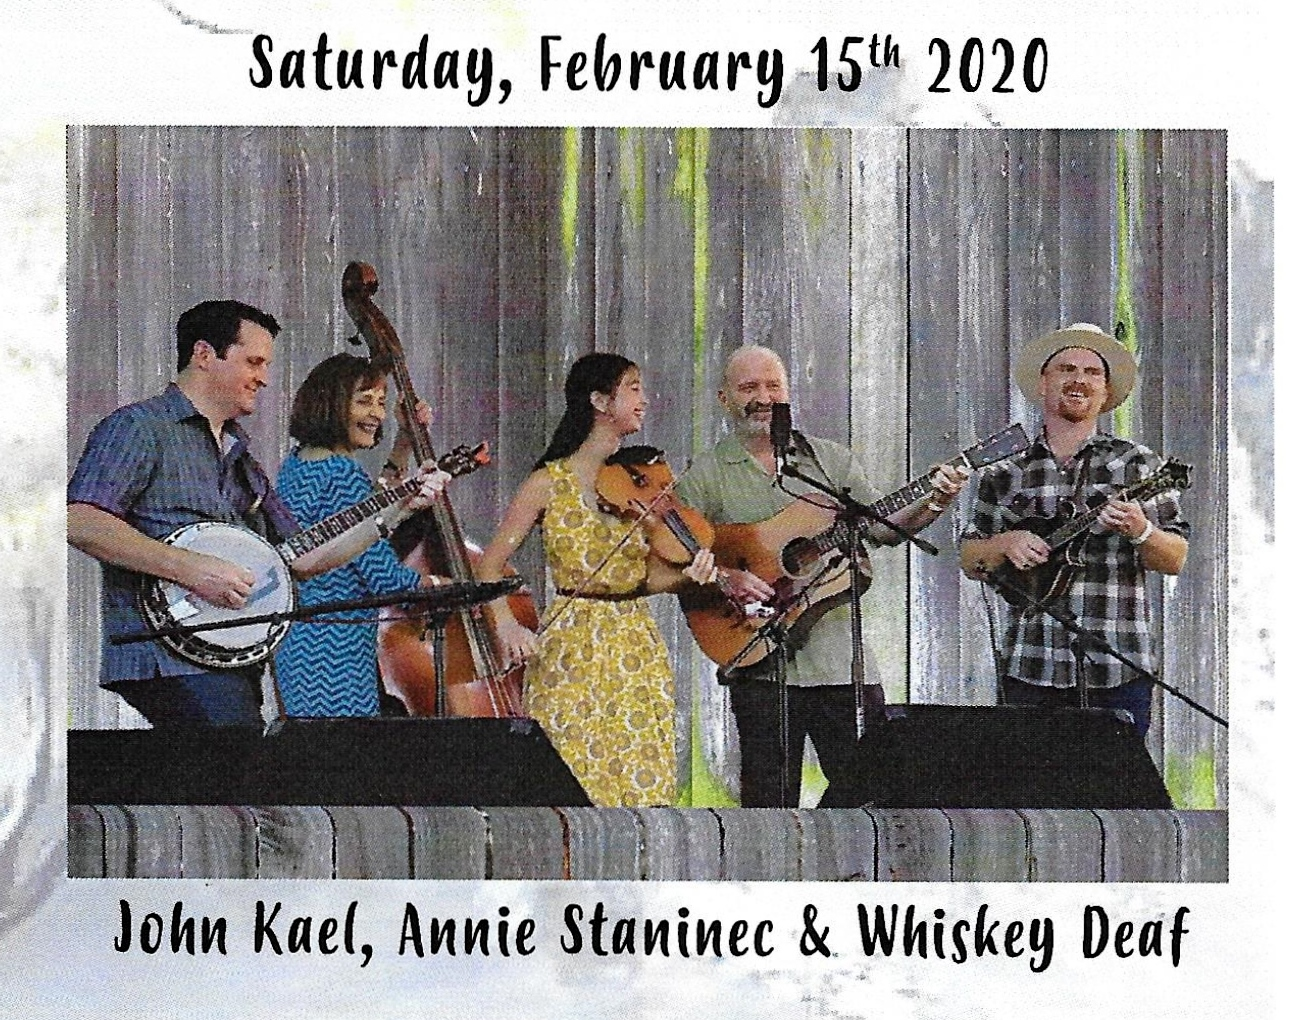 2020 February 15th - Whiskey Deaf Concert